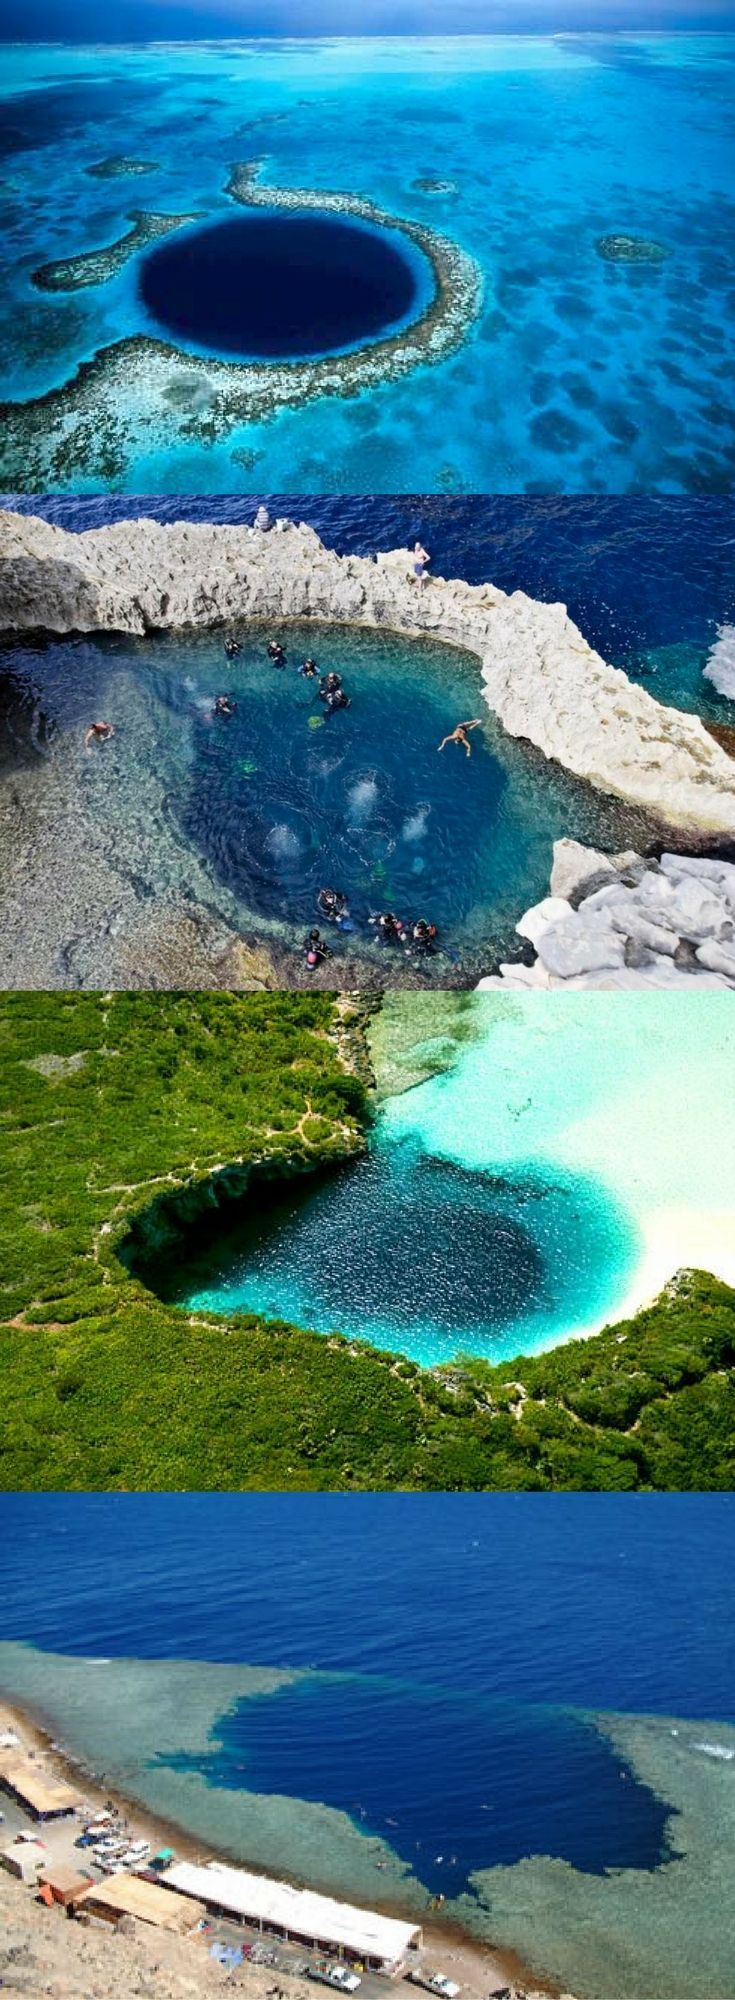 Blue Hole Mania - Scuba Diving - Great Blue Hole: is it worth diving it? - Blue Hole Mania: marketing or must-dive spots, a report from Belize - World Adventure Divers - Read more on